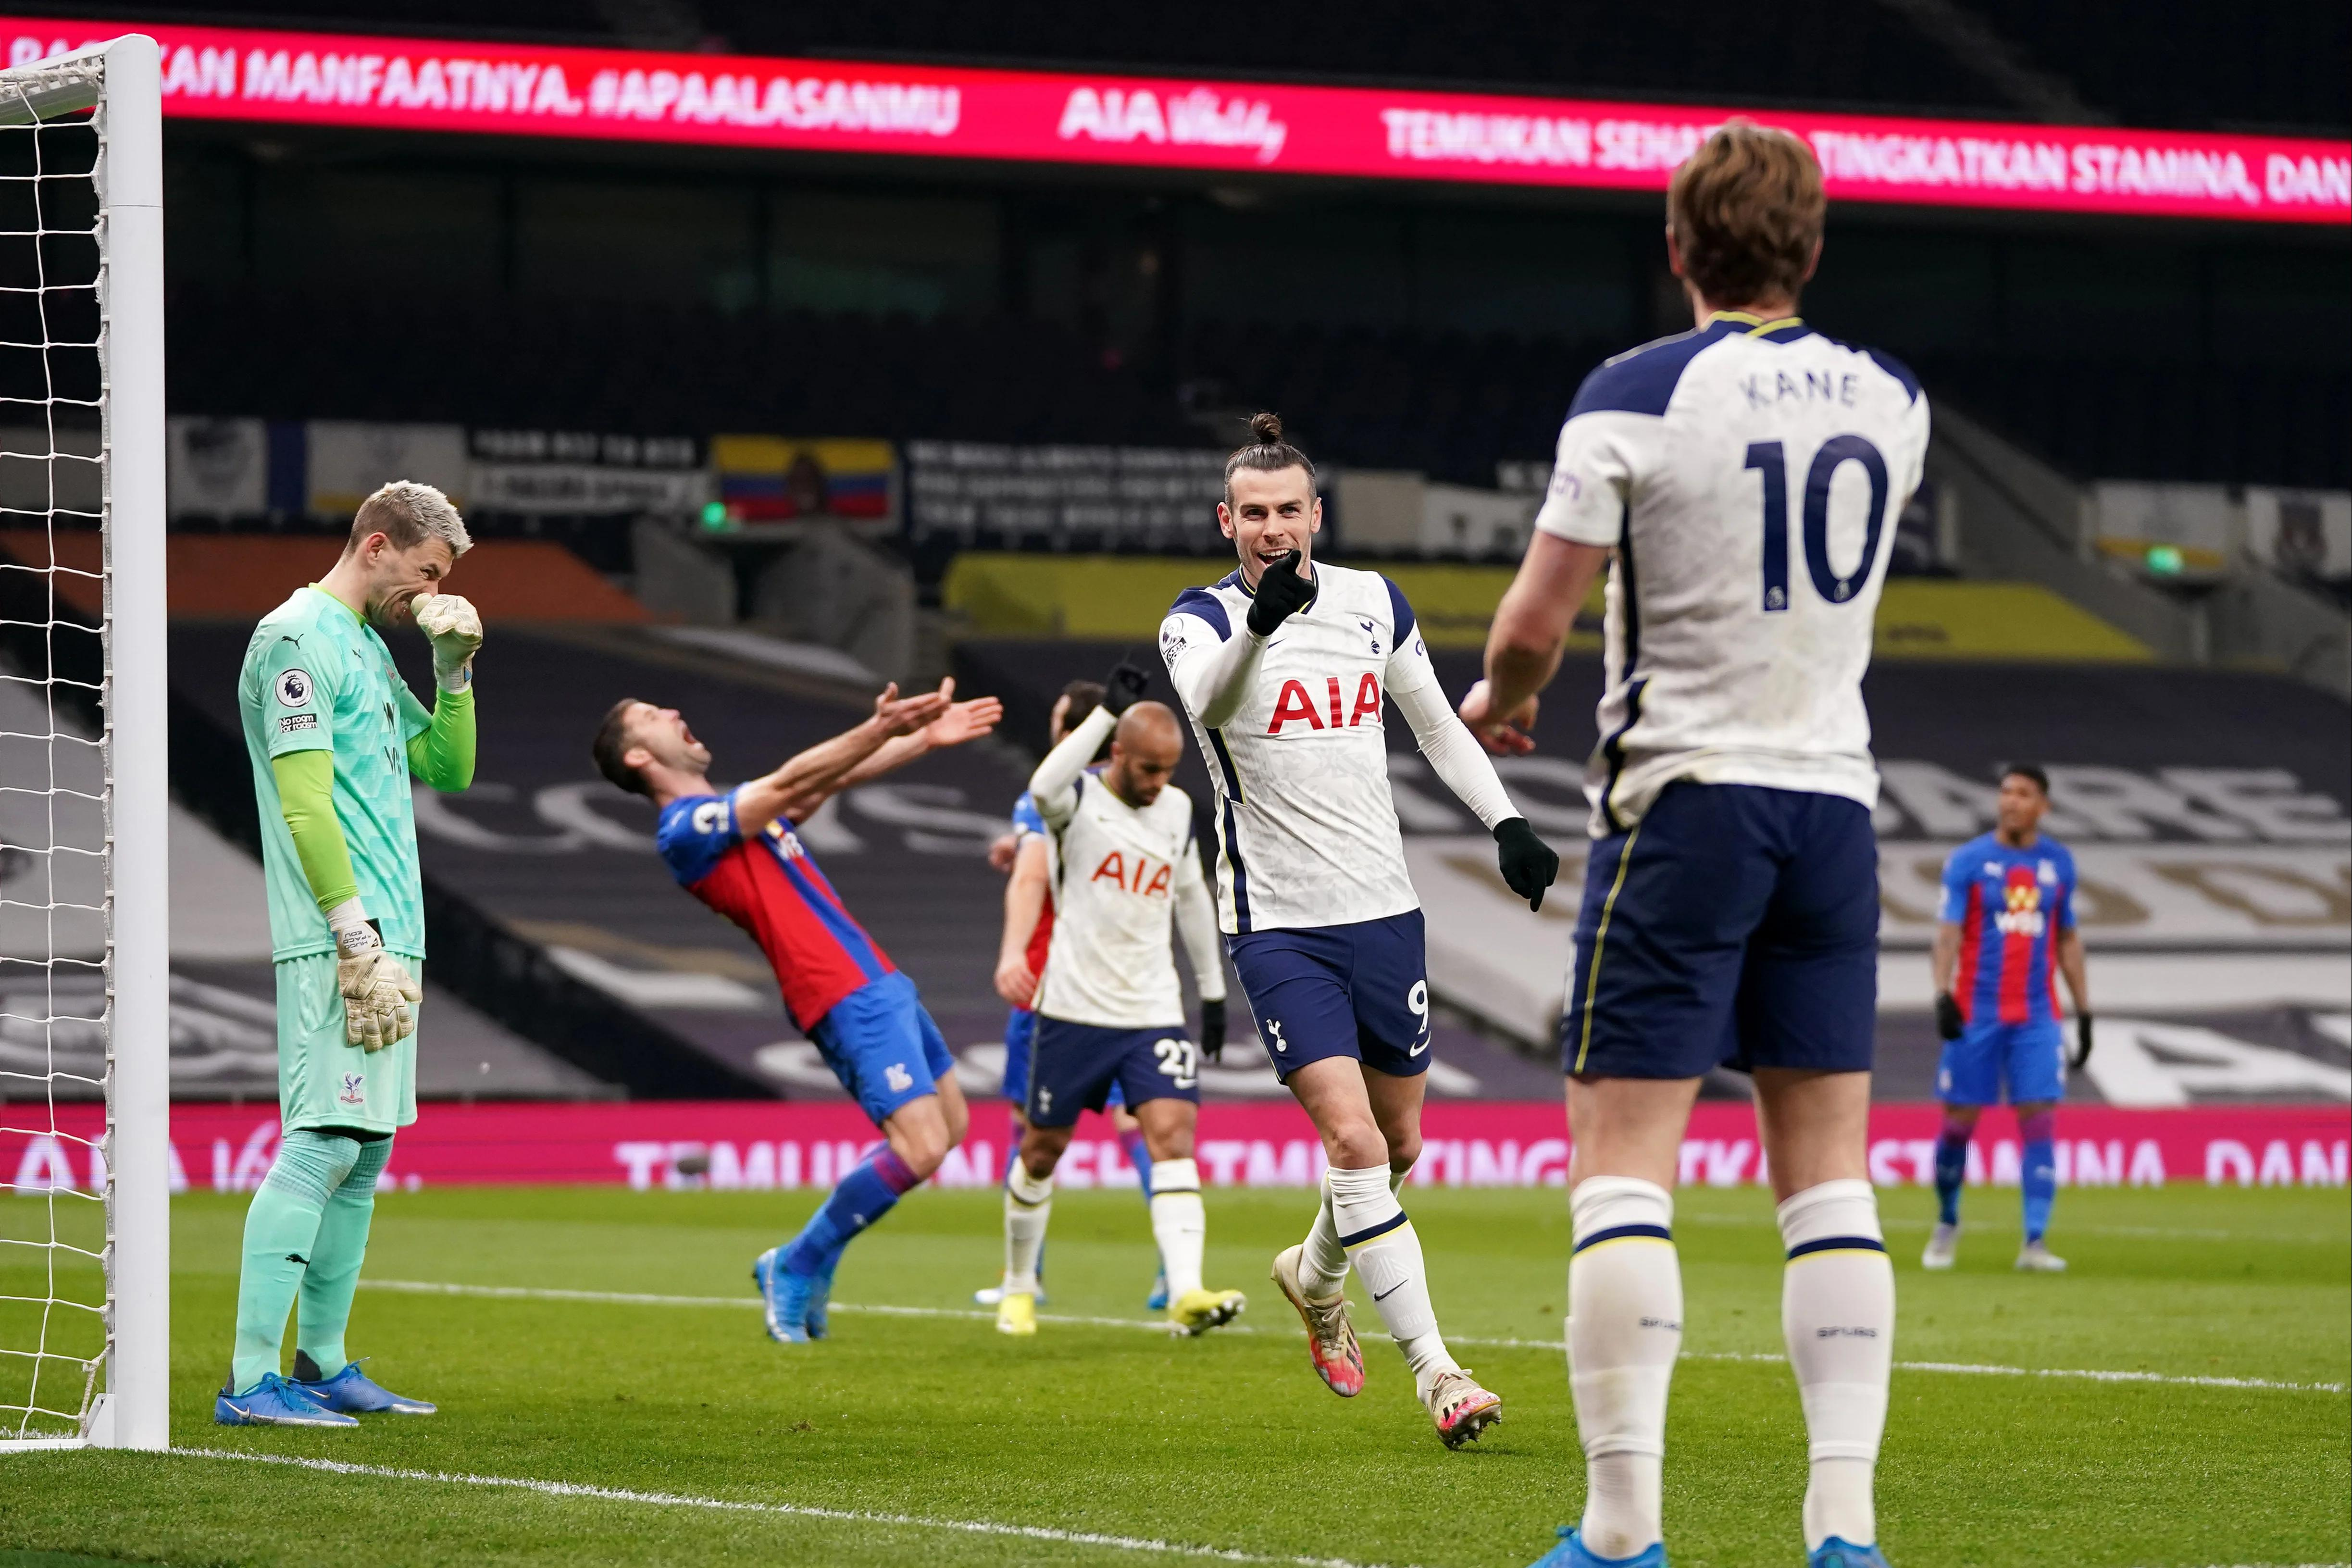 Crystal palace take on tottenham in the 2021/2022 premier league on saturday, september 11, 2021. Tottenham Vs Crystal Palace Player Ratings Bale And Kane Magnificent Zaha Lively On Return Evening Standard